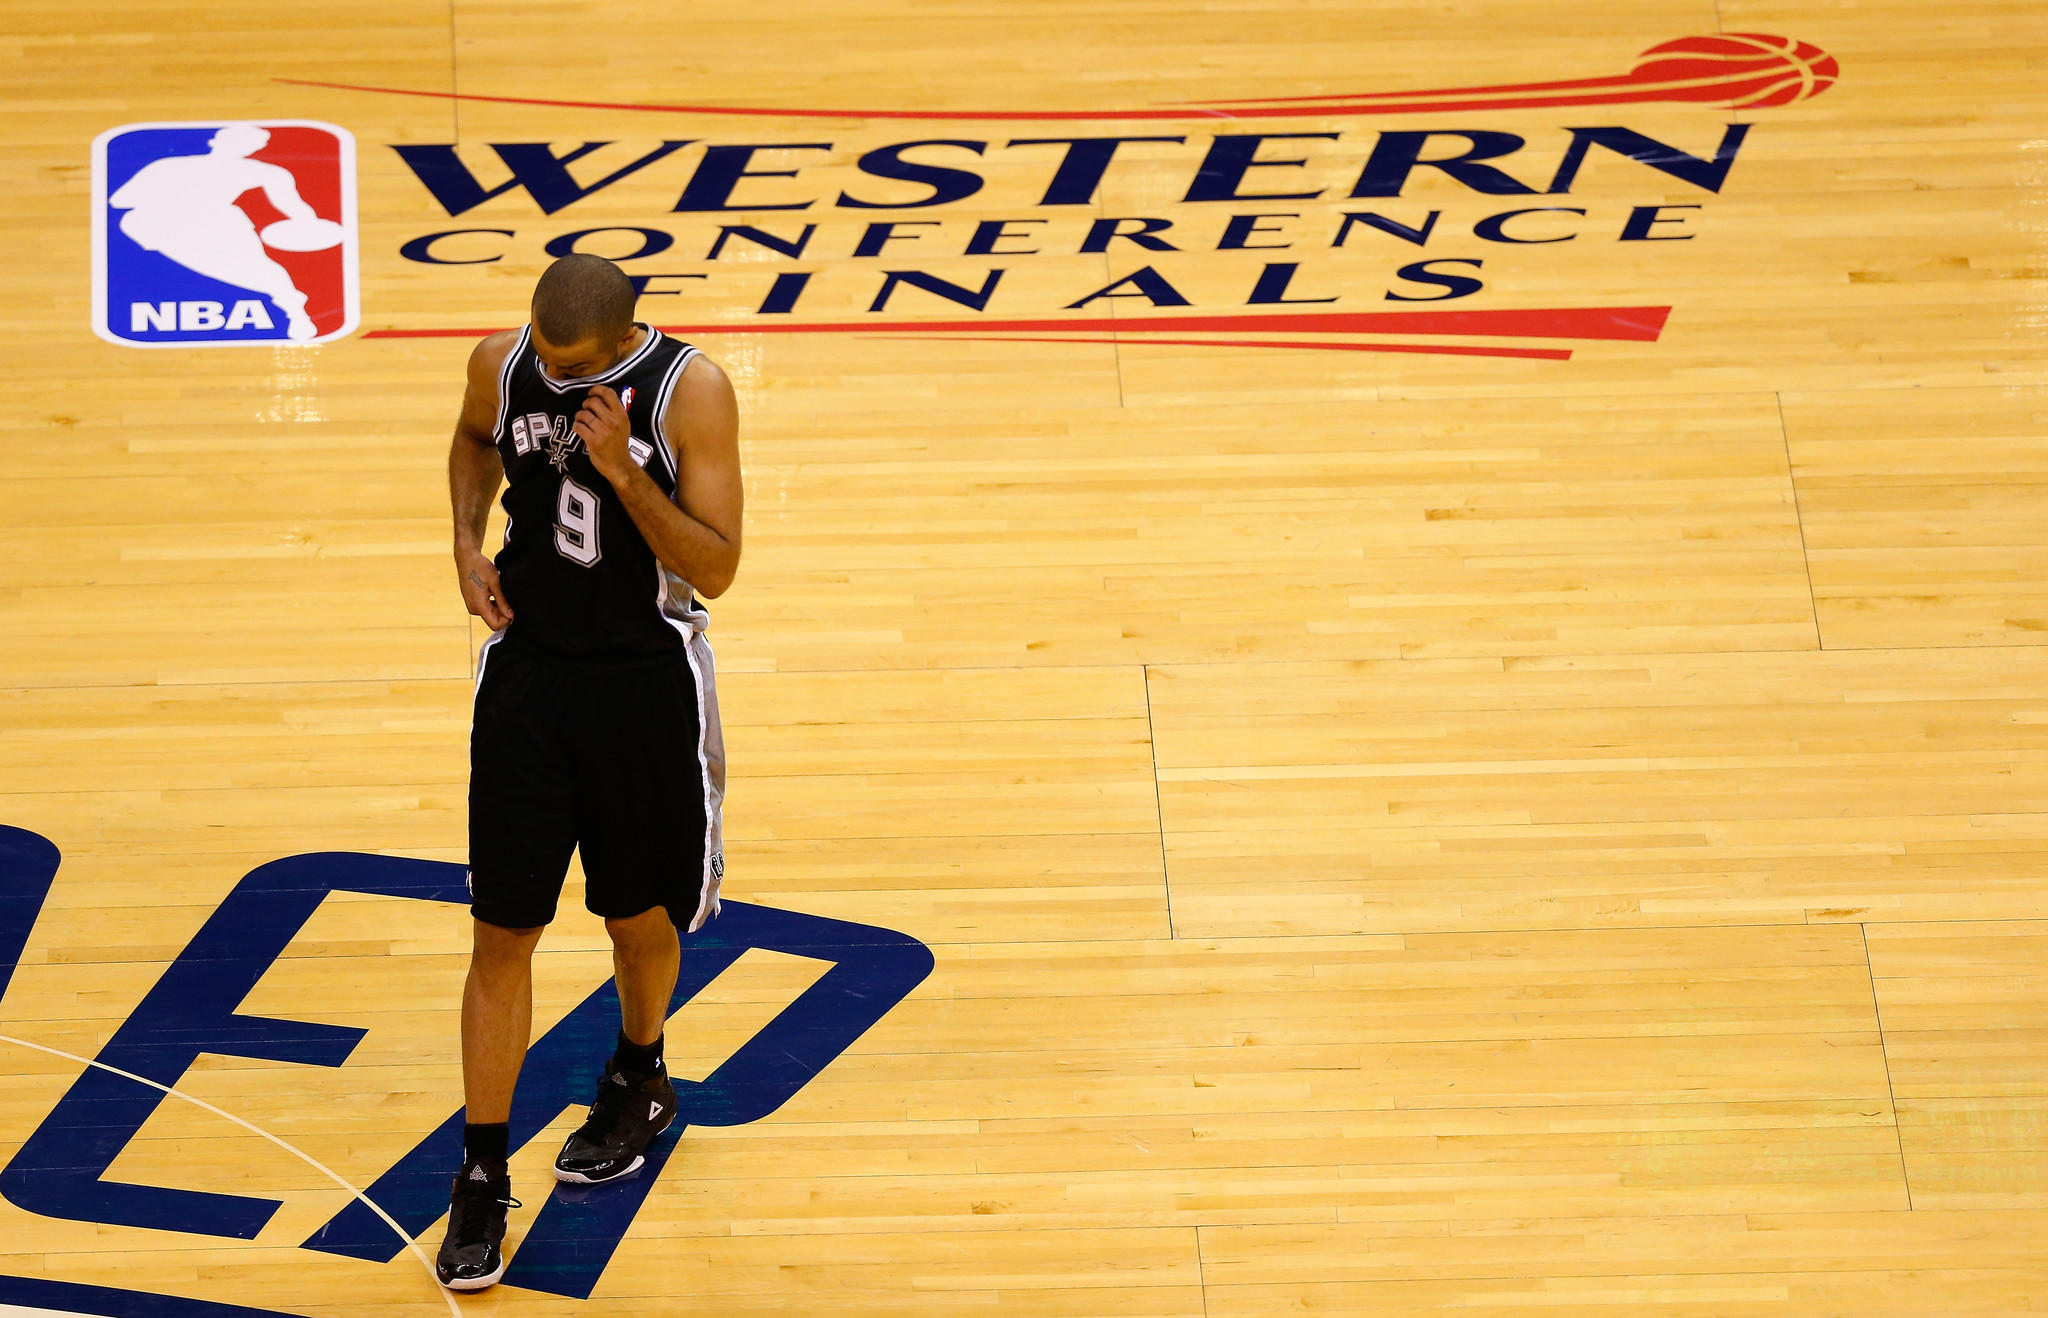 Tony Parker of the San Antonio Spurs walks across the court in the first half of Game 6 against the Oklahoma City Thunder.